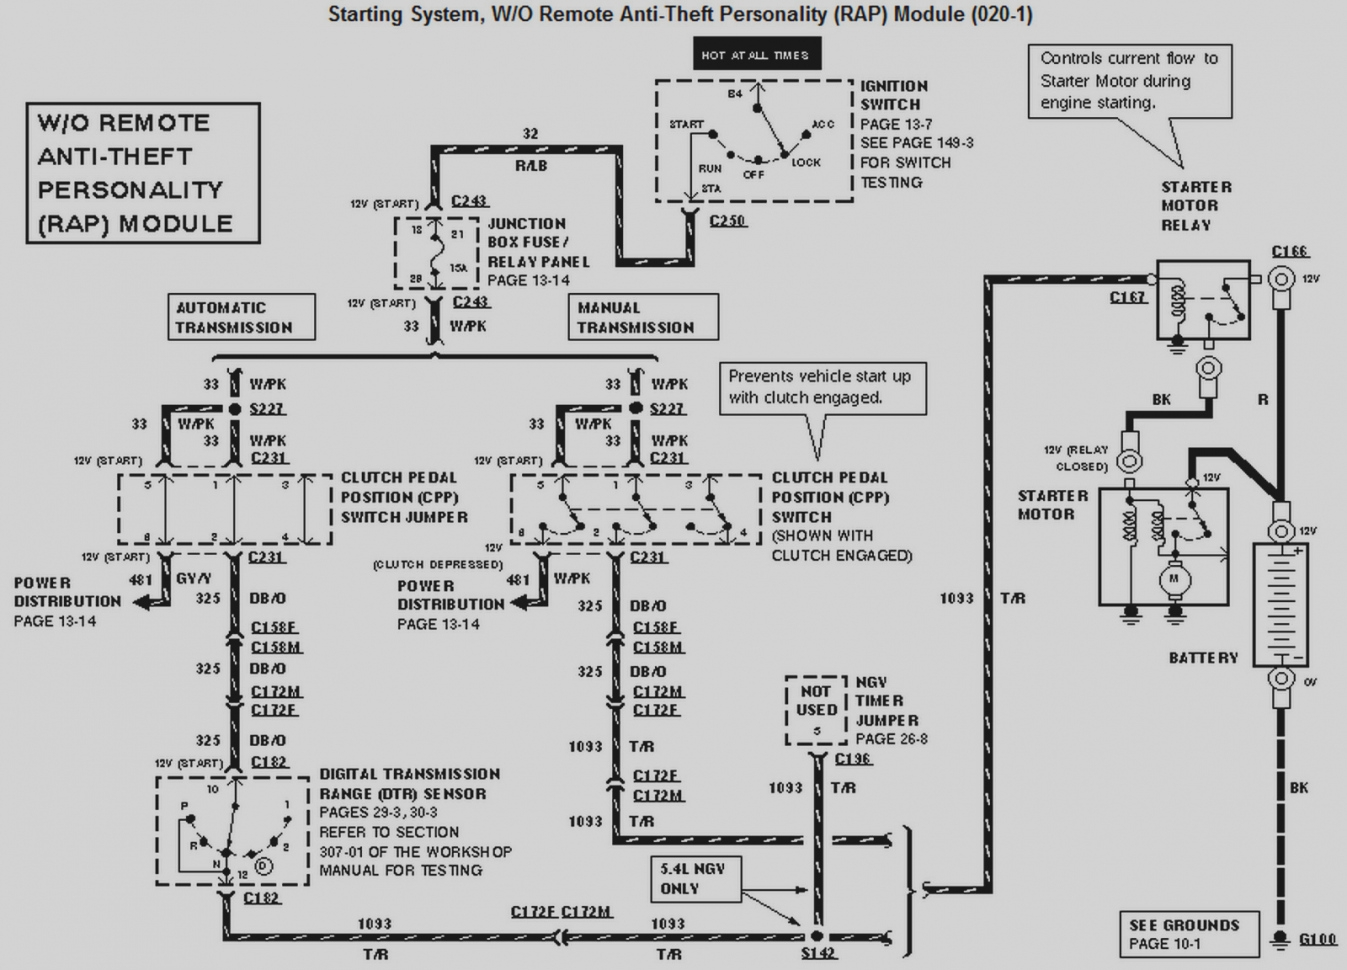 bass tracker wiring schematic free wiring diagram. Black Bedroom Furniture Sets. Home Design Ideas